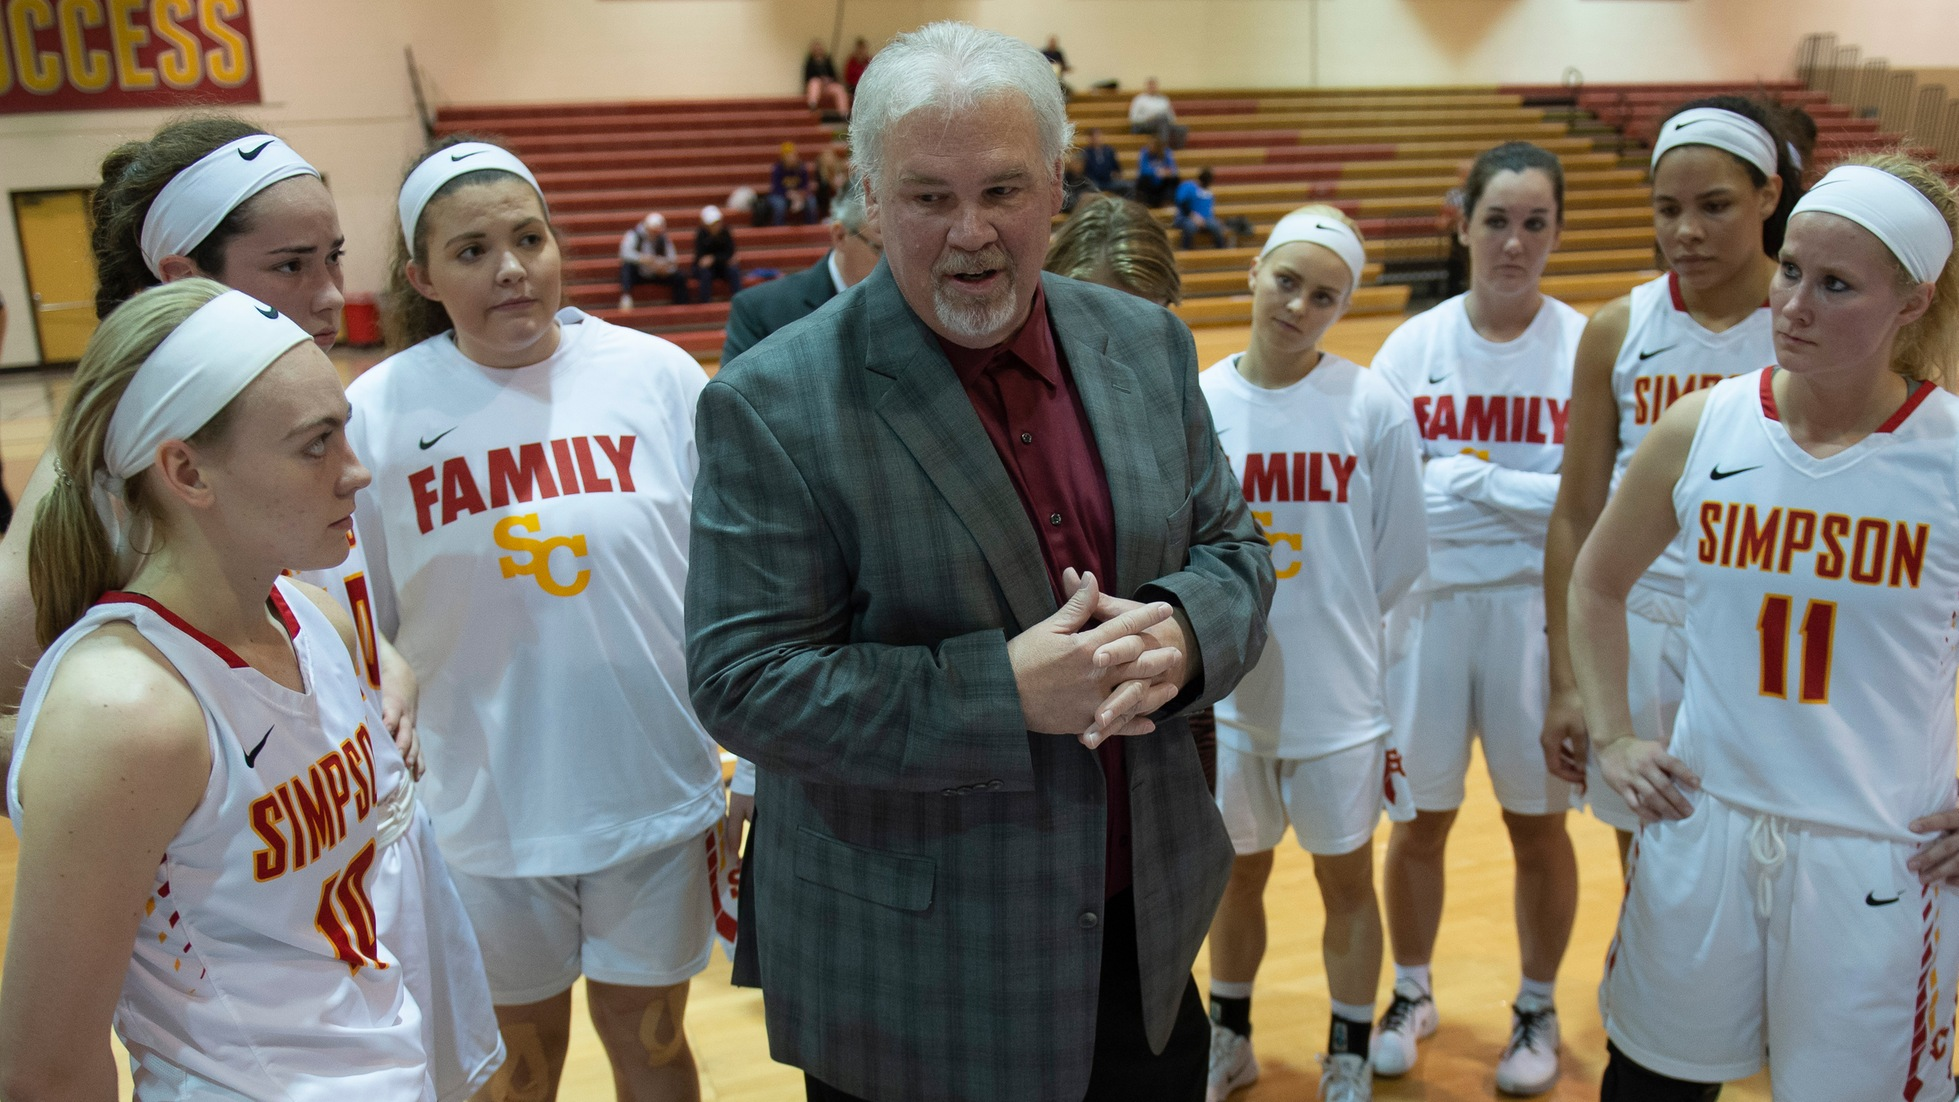 Brian Niemuth received his 600th career victory as head coach of the Simpson women's basketball team.